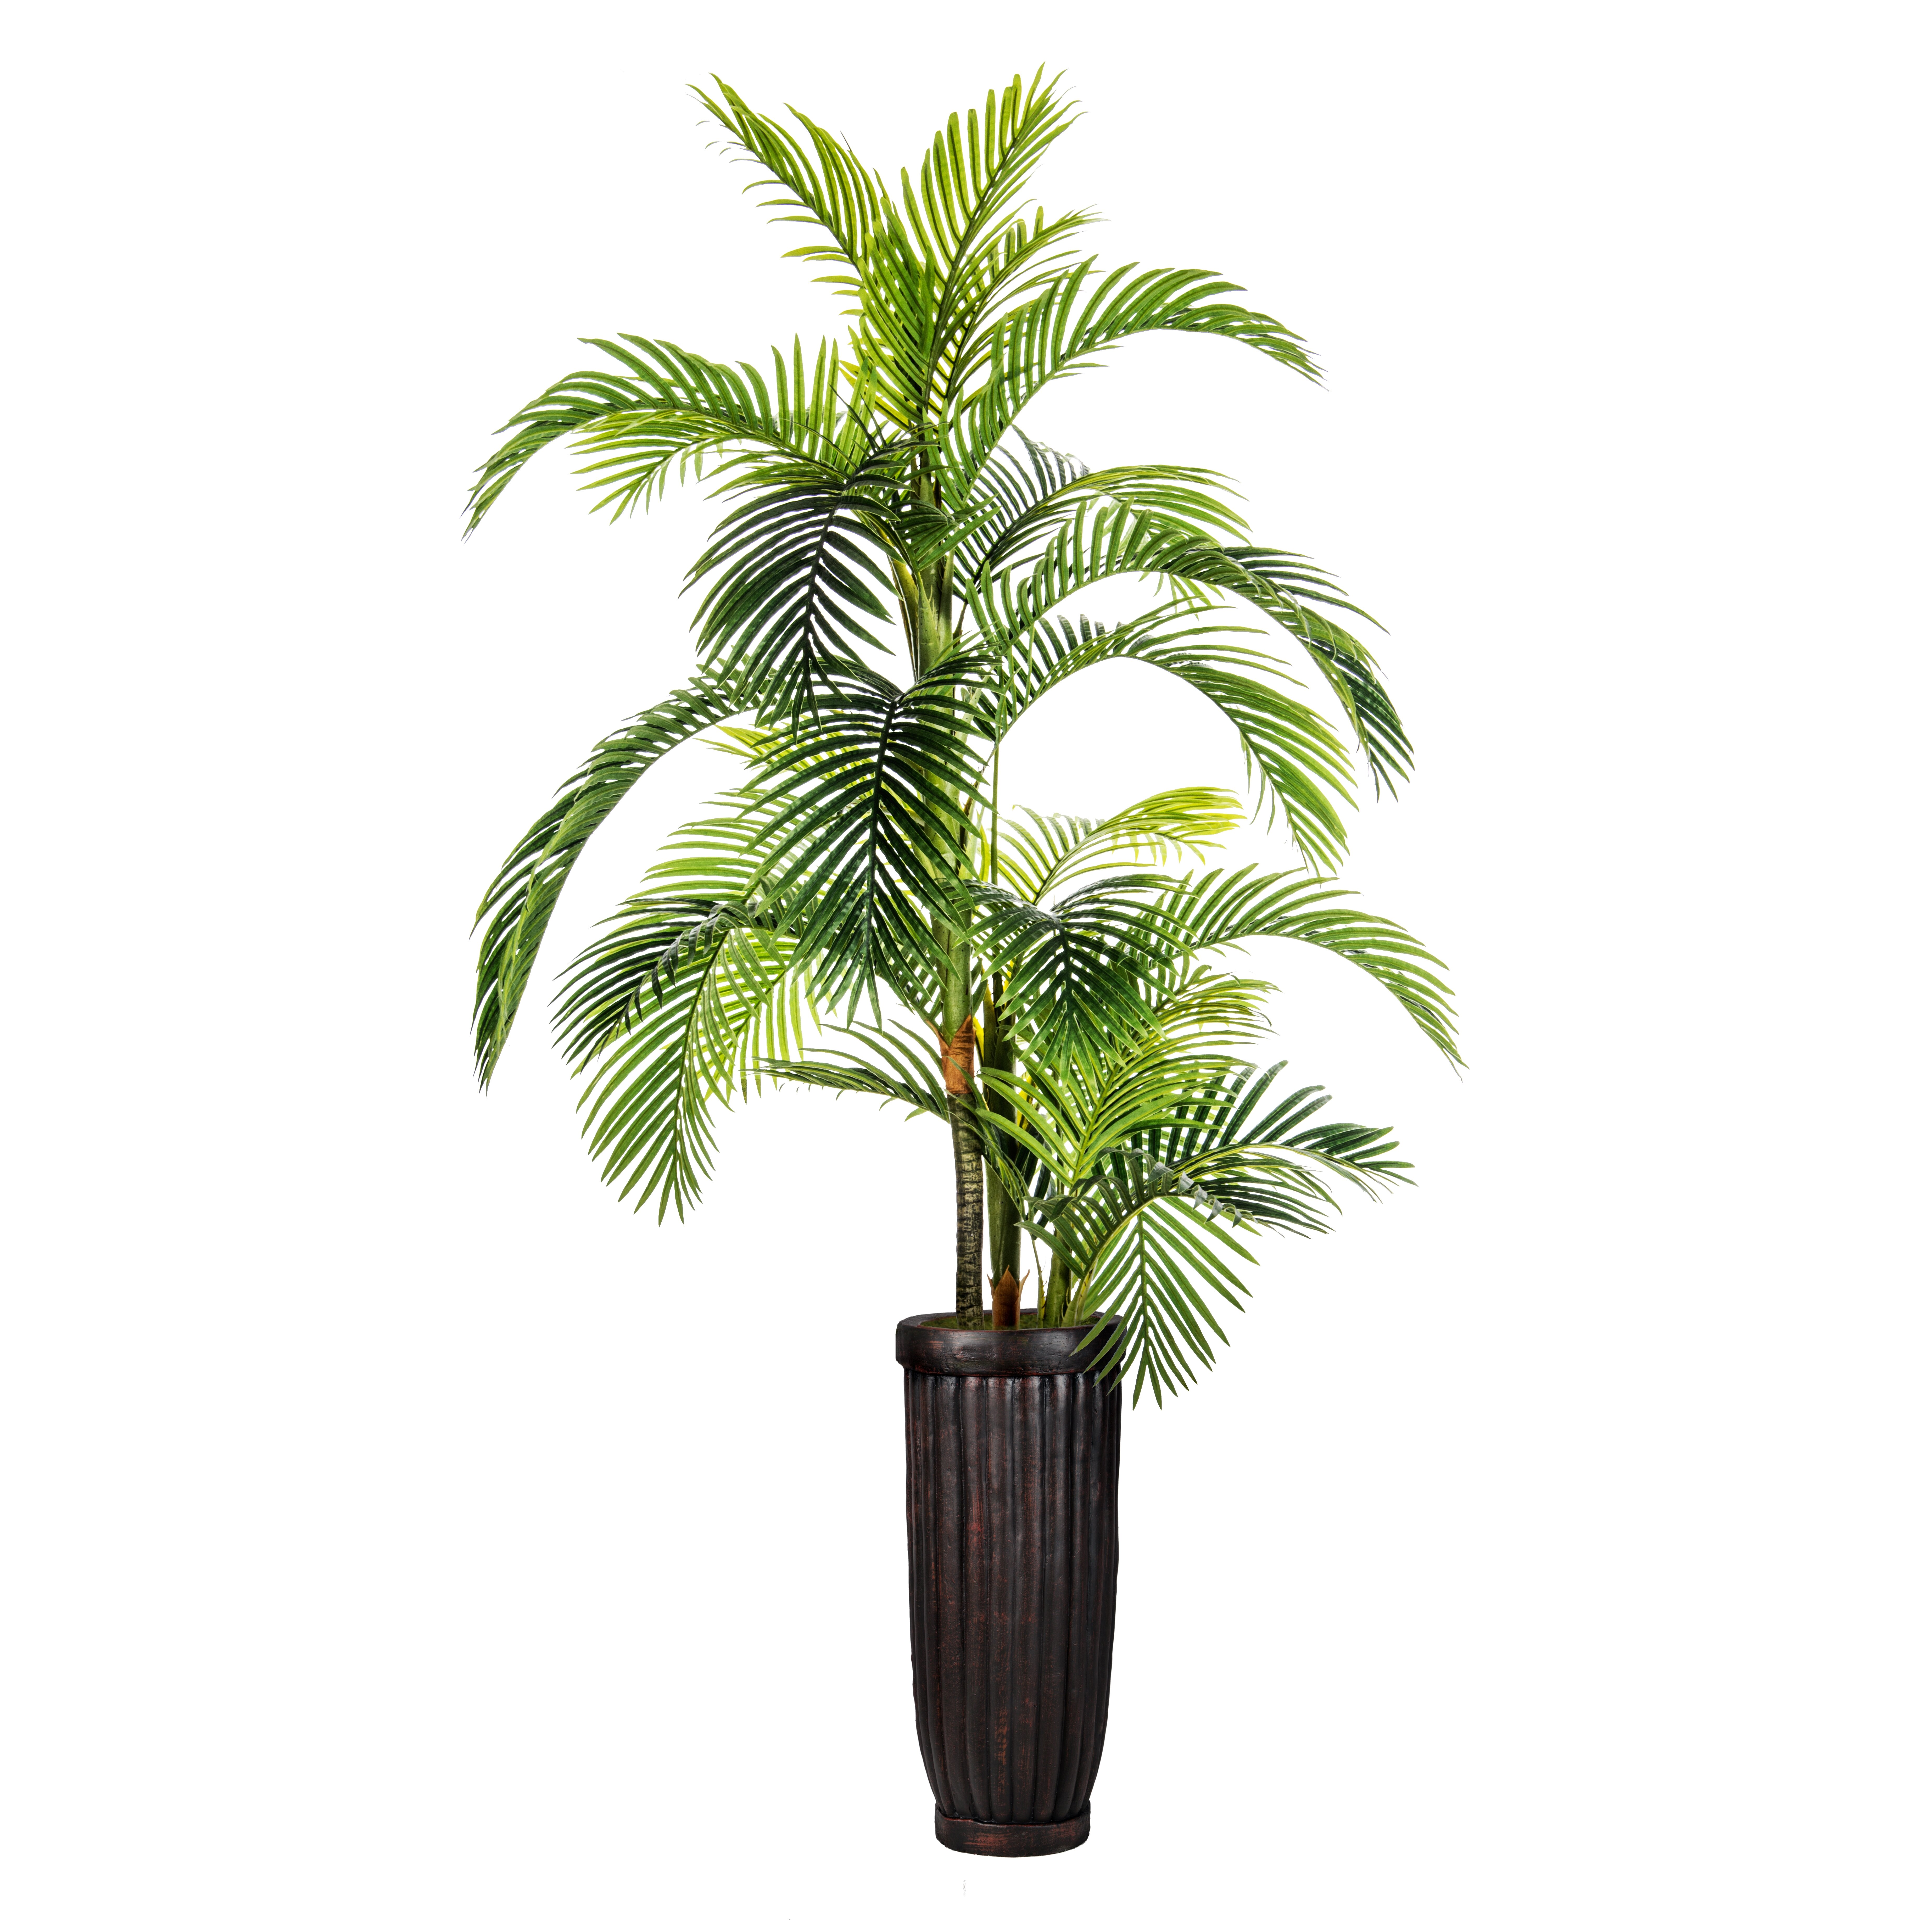 Laura ashley home fiberstone palm tree in pot amp reviews